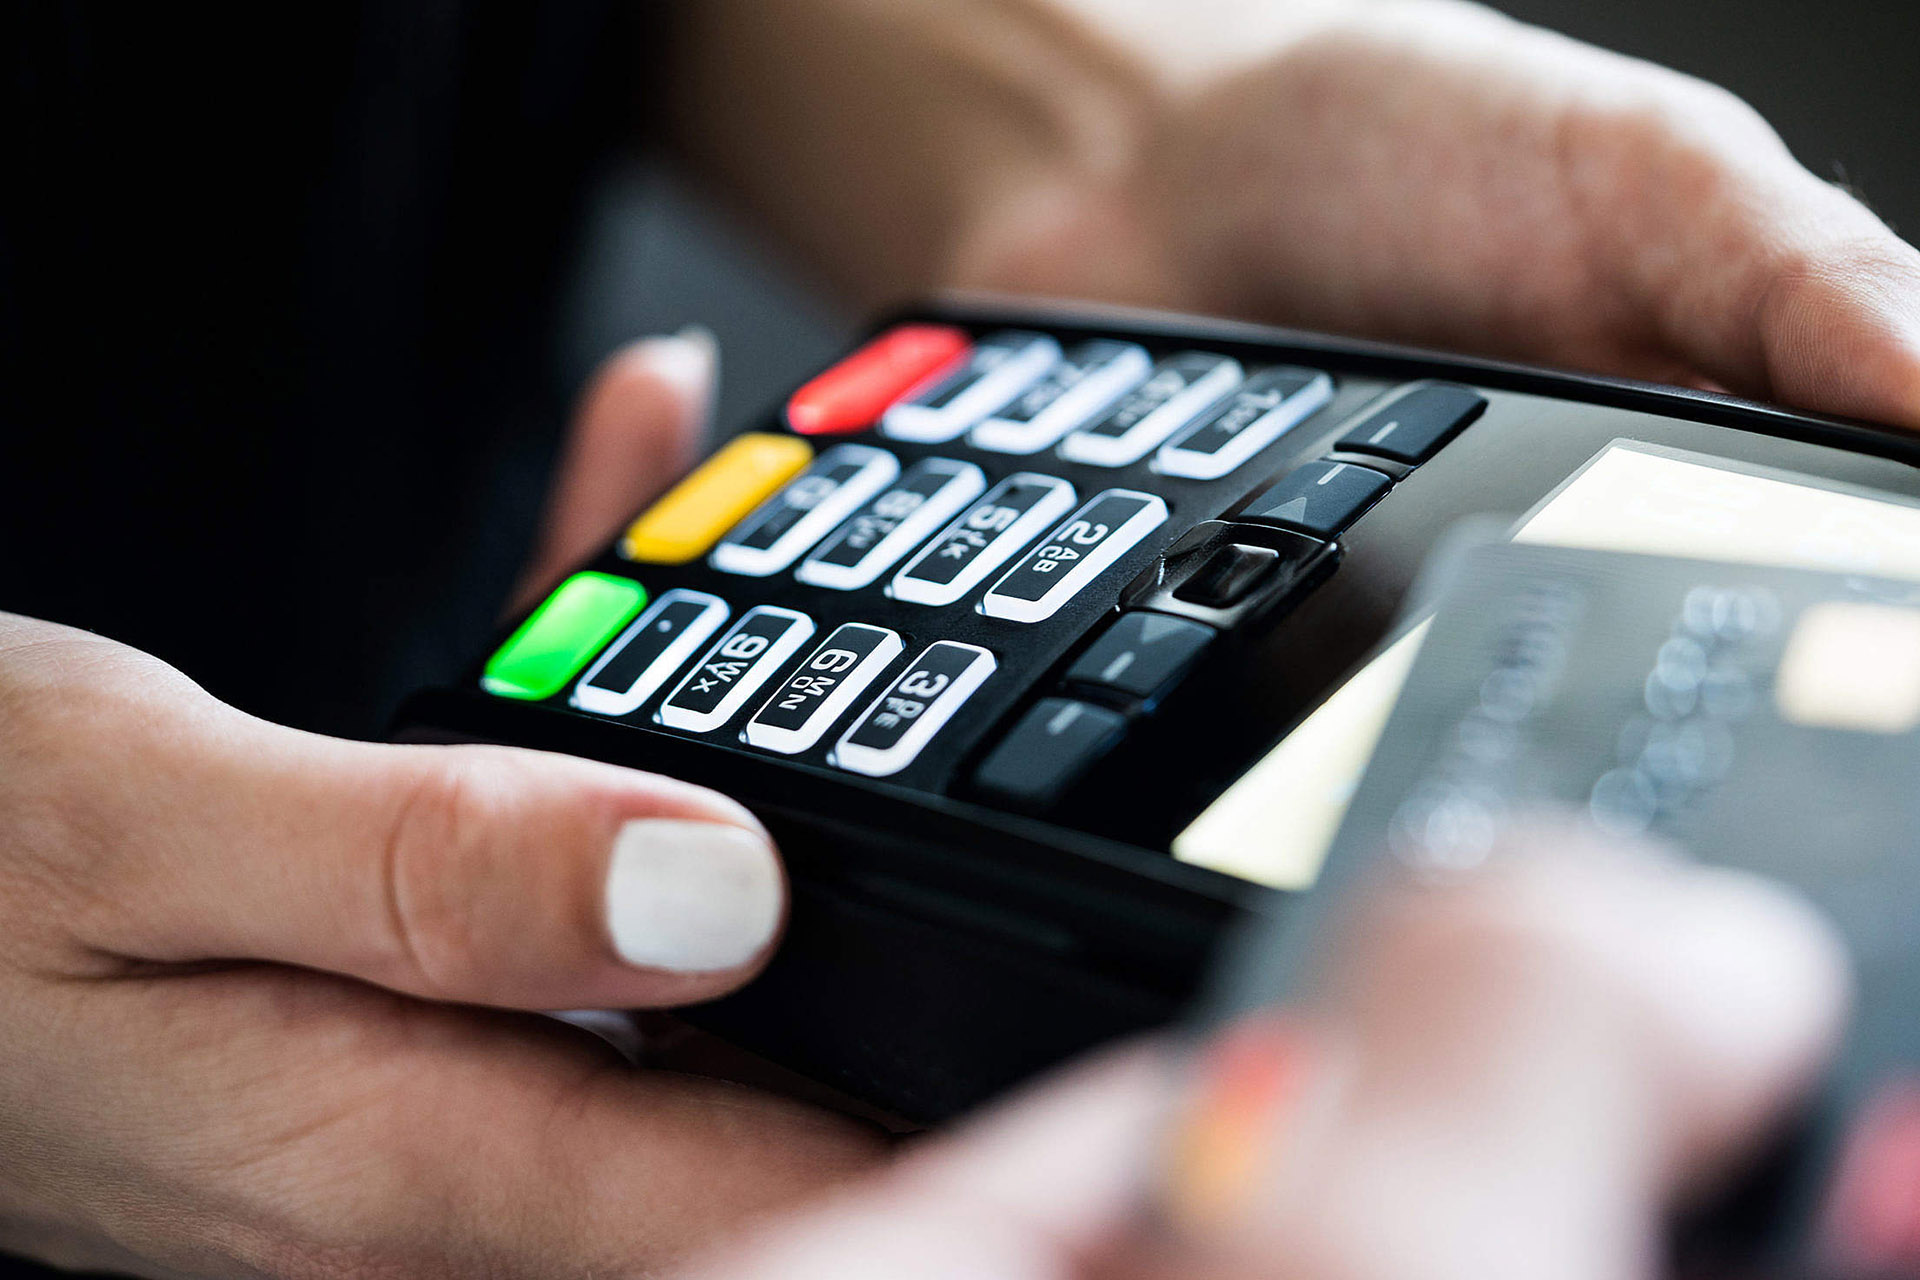 EMV Transaction Flow. Part 5: READ RECORDS